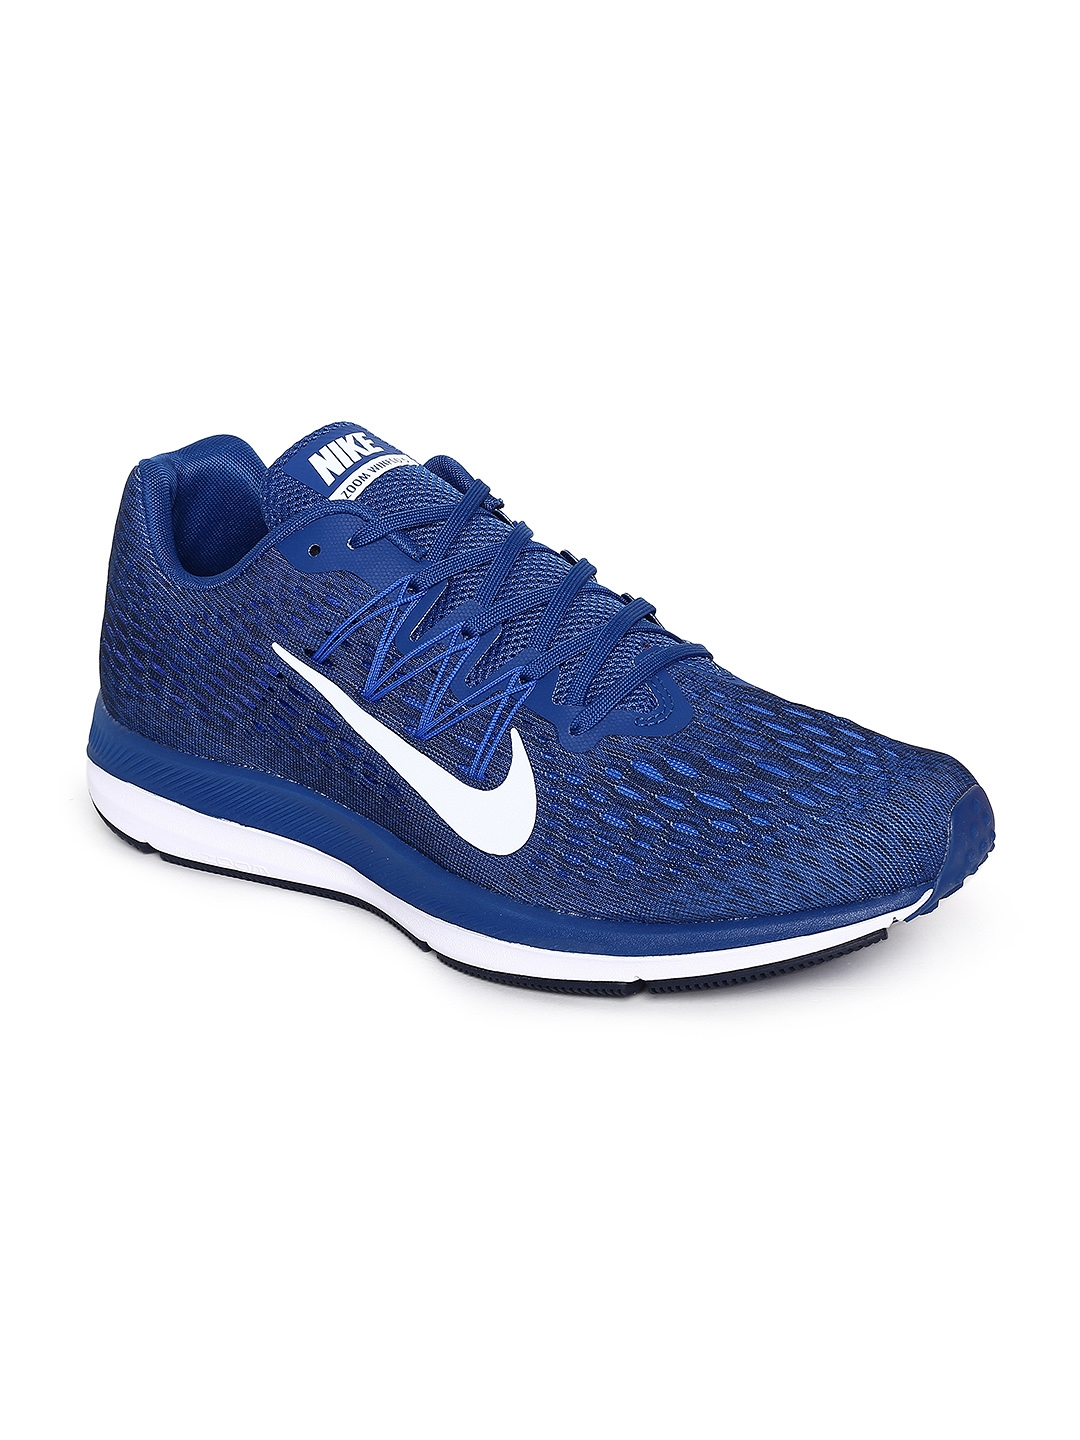 on sale a901c 8add3 Nike Men Blue Air Zoom Winflo 5 Running Shoes